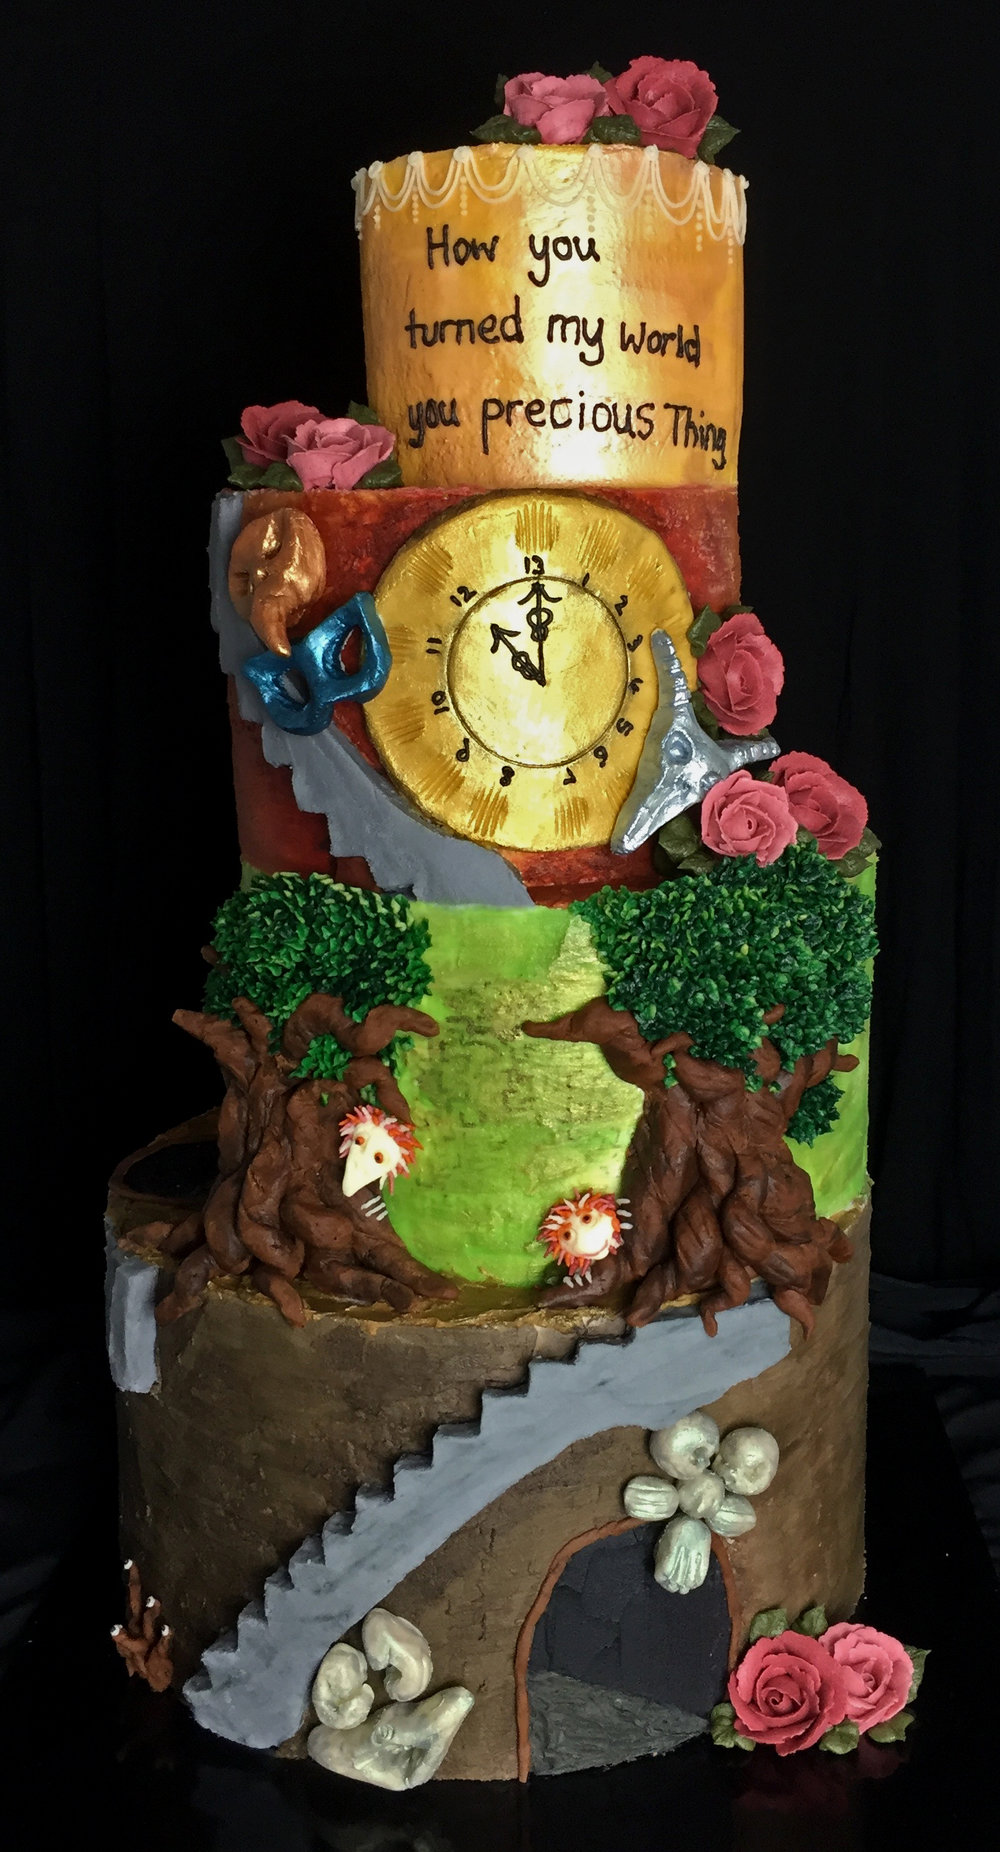 Labyrinth-Mural-Cake-1.png